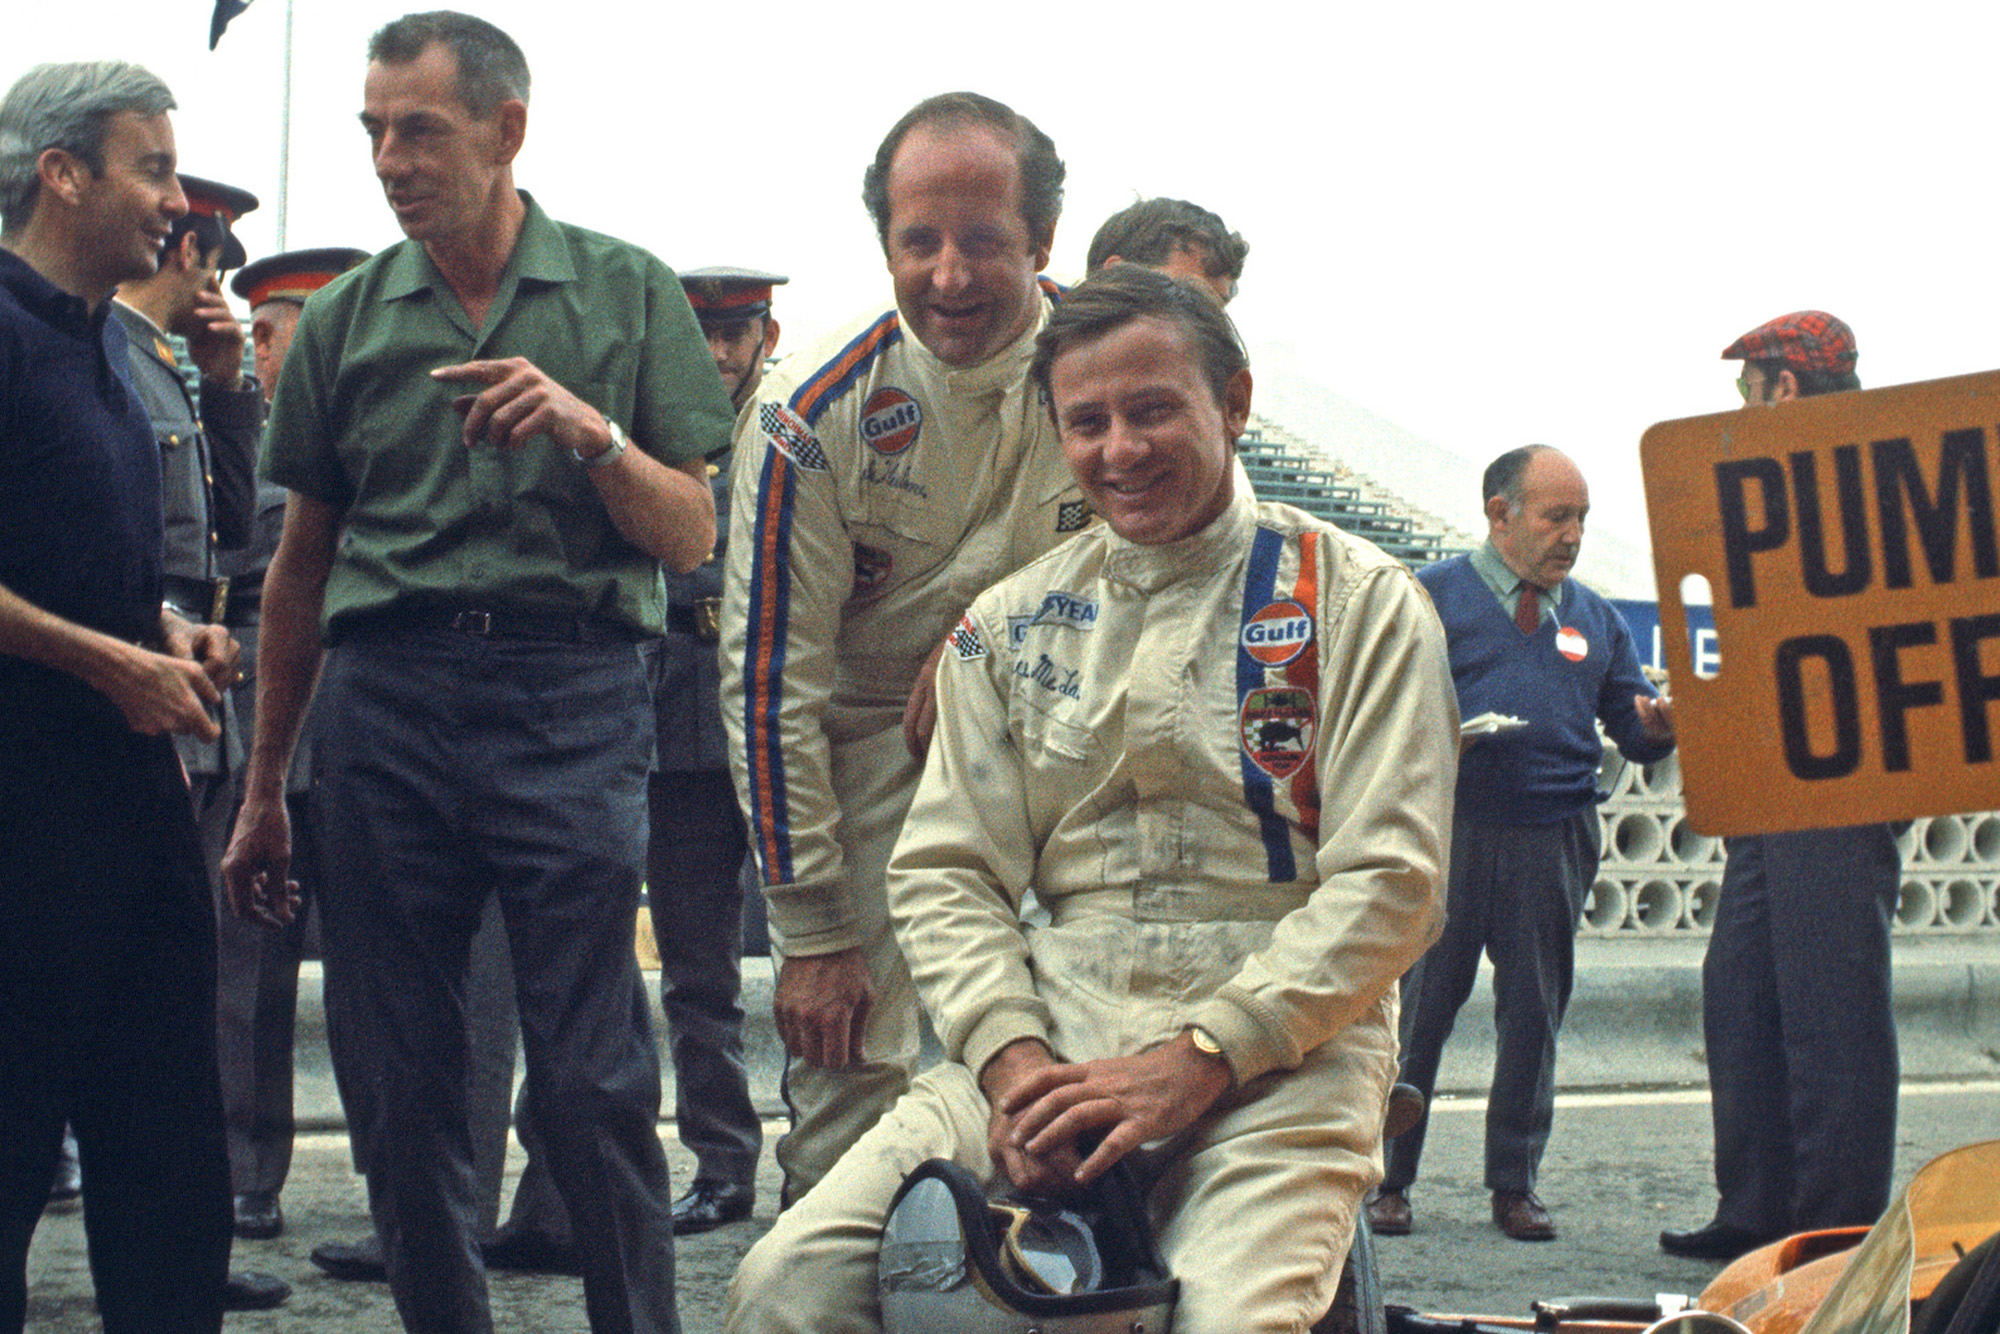 Bruce McLaren with Denny Hulme Ron Tauranac and Teddy Mayer